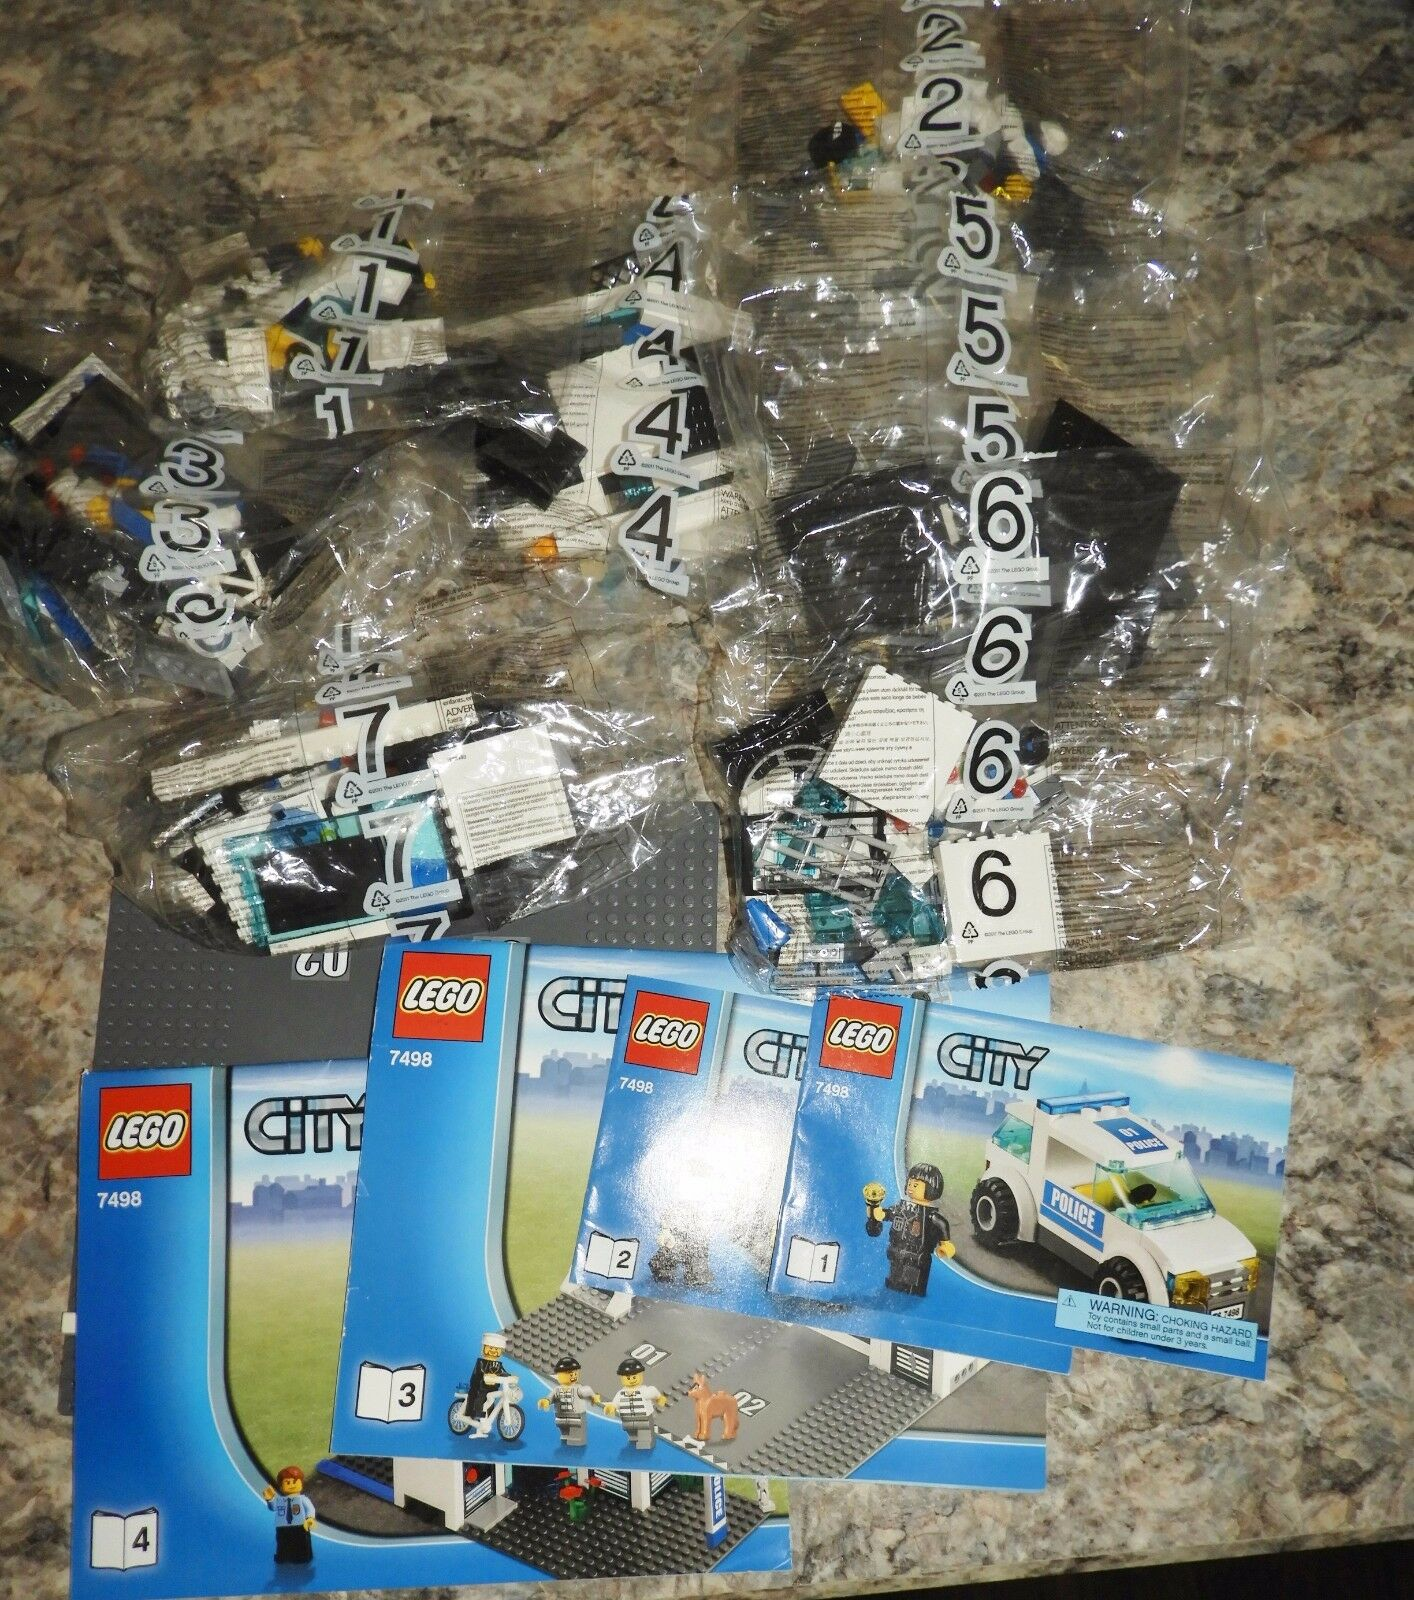 Lego 7498 Police Station New Bags 1-7 Instructions & Base Plate As Shown